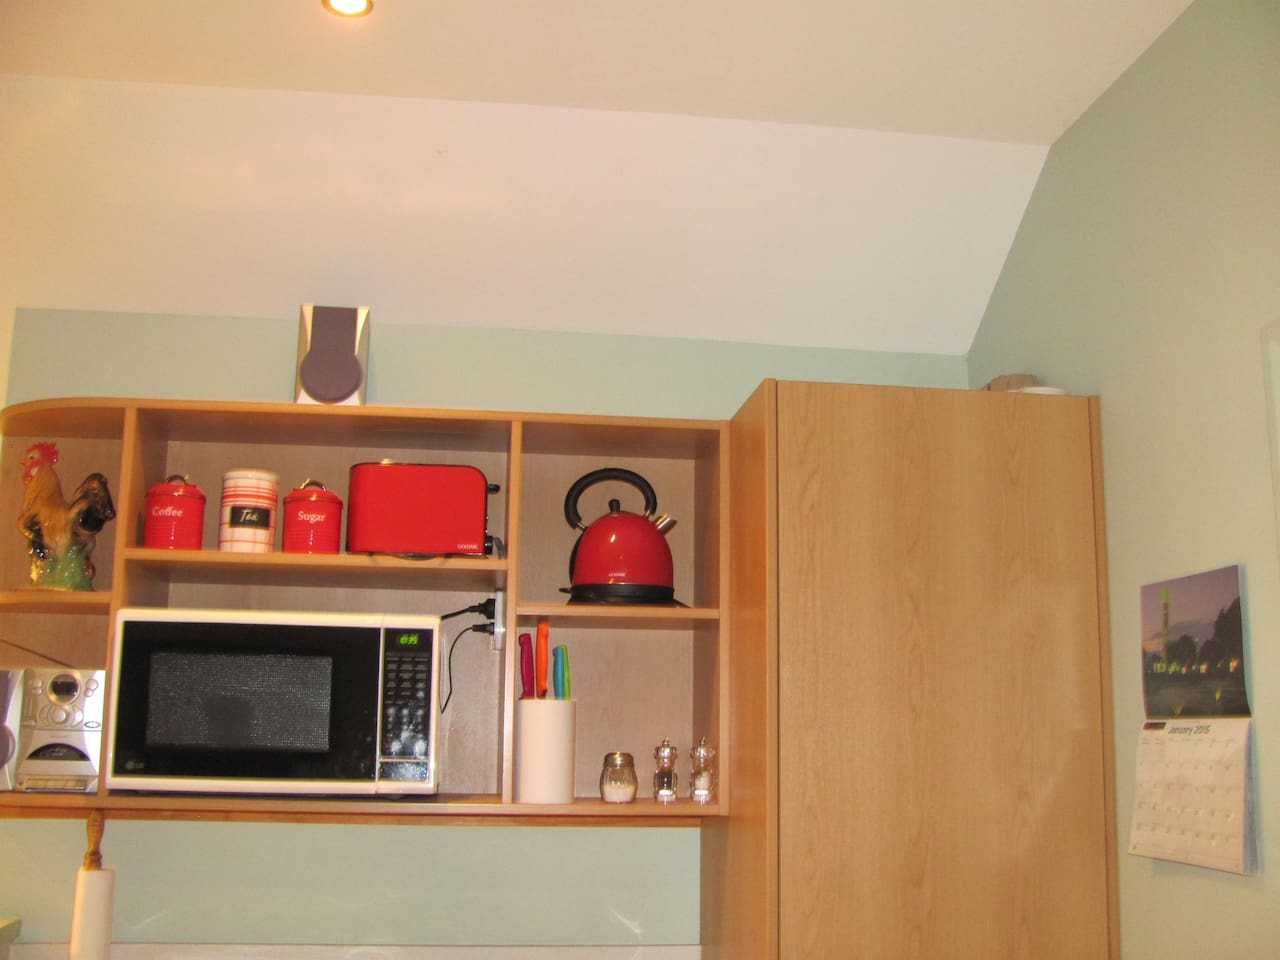 Equipped with Jug, Toaster and Microwave also crockery and cutlery.